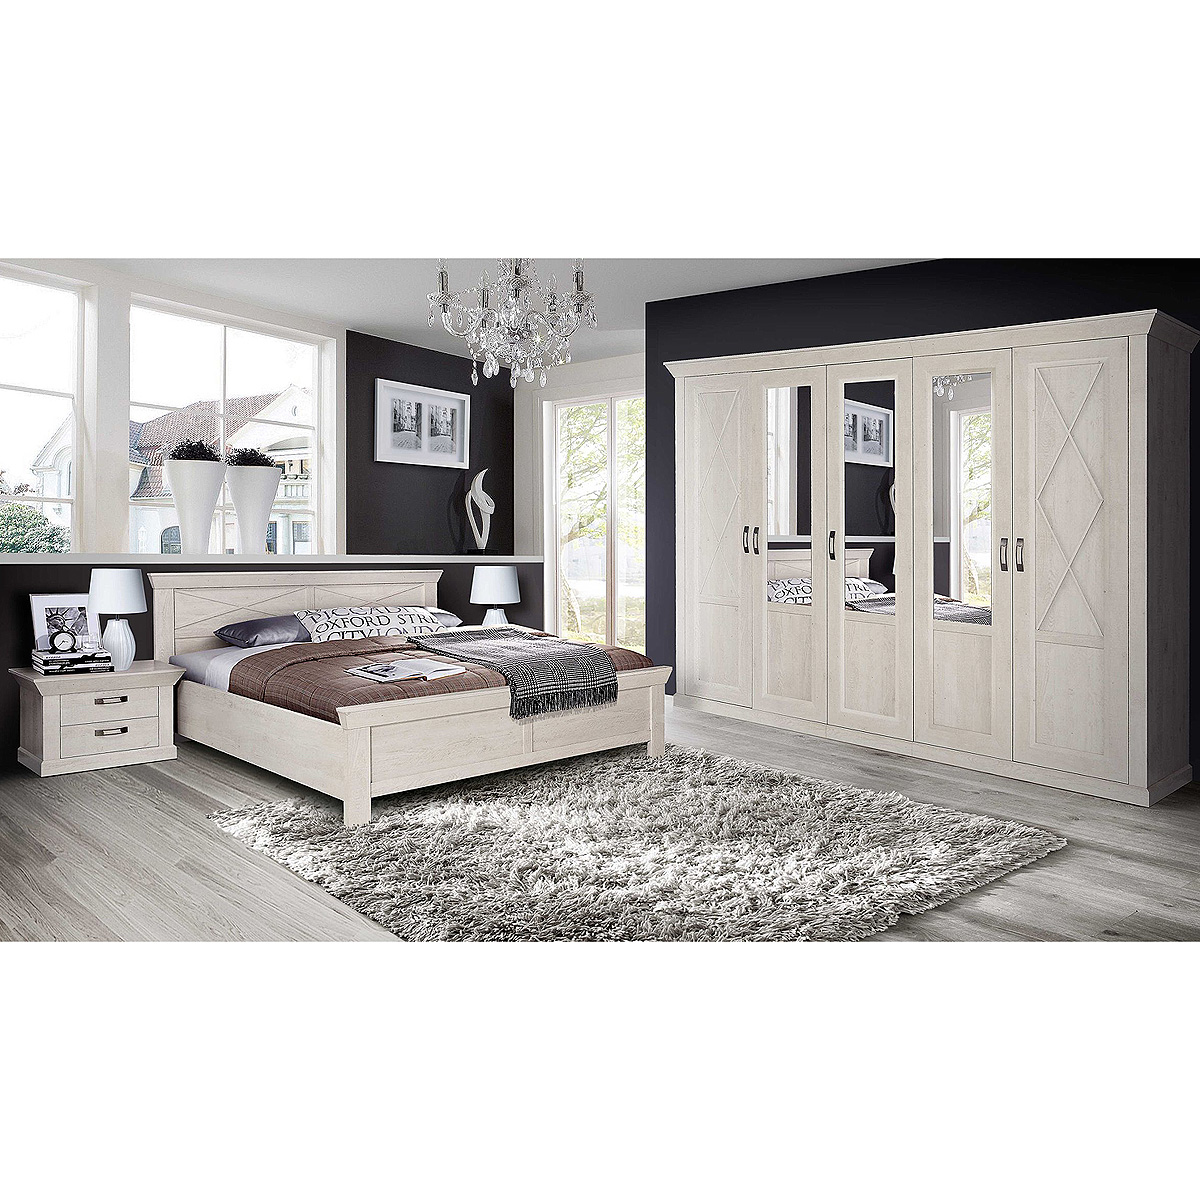 kleine zimmer jungen einrichten. Black Bedroom Furniture Sets. Home Design Ideas